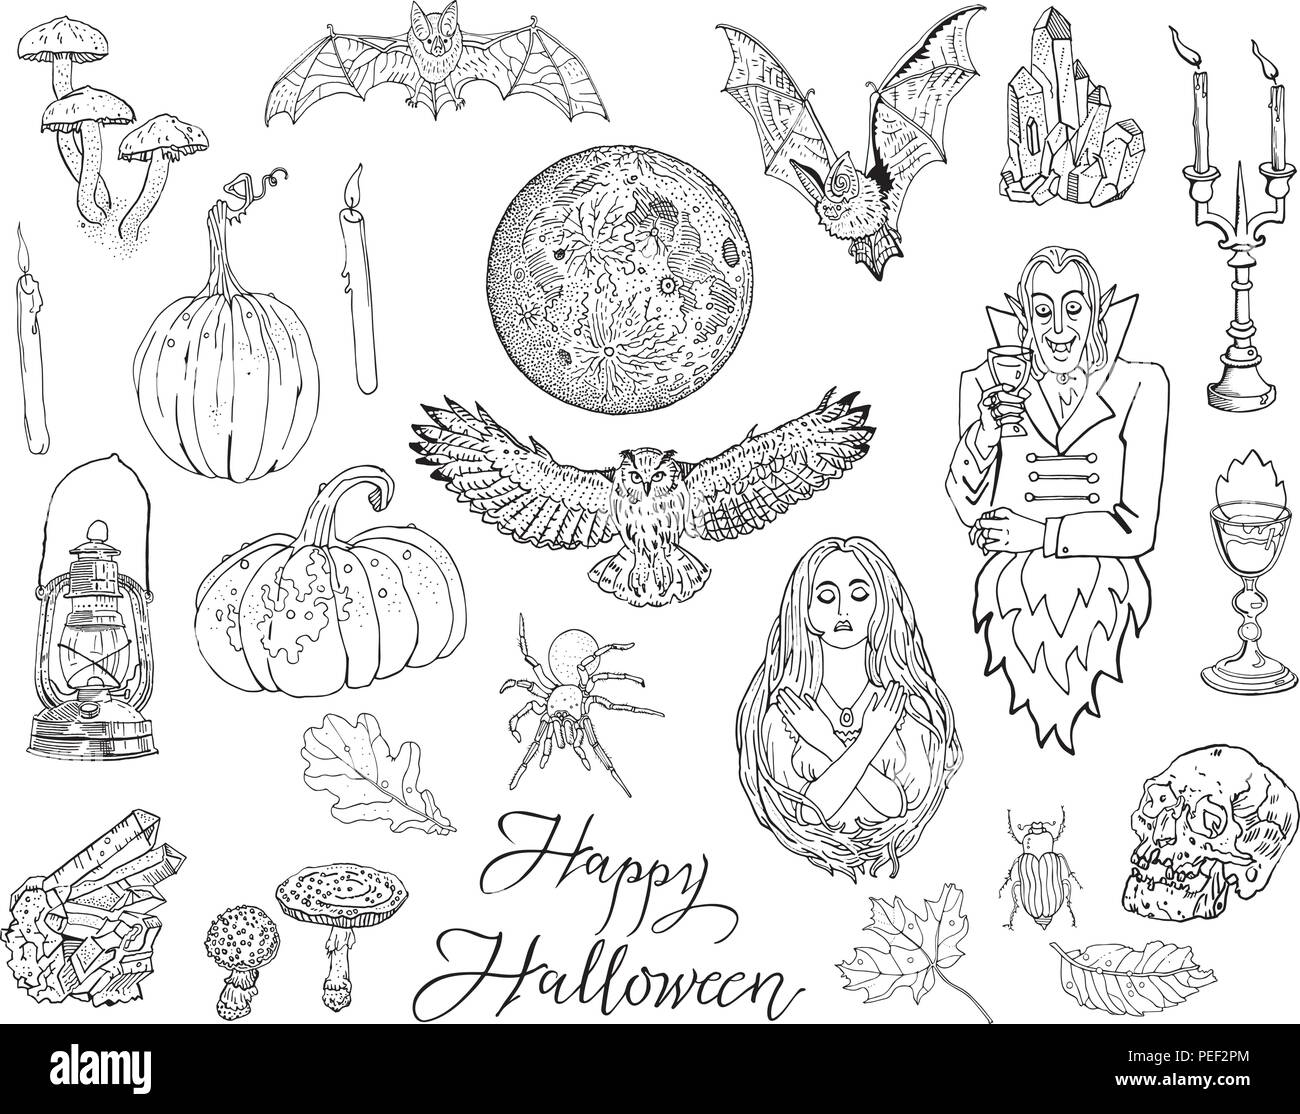 halloween, autumn, magic, gothic, fantasy doodle symbols, isolated